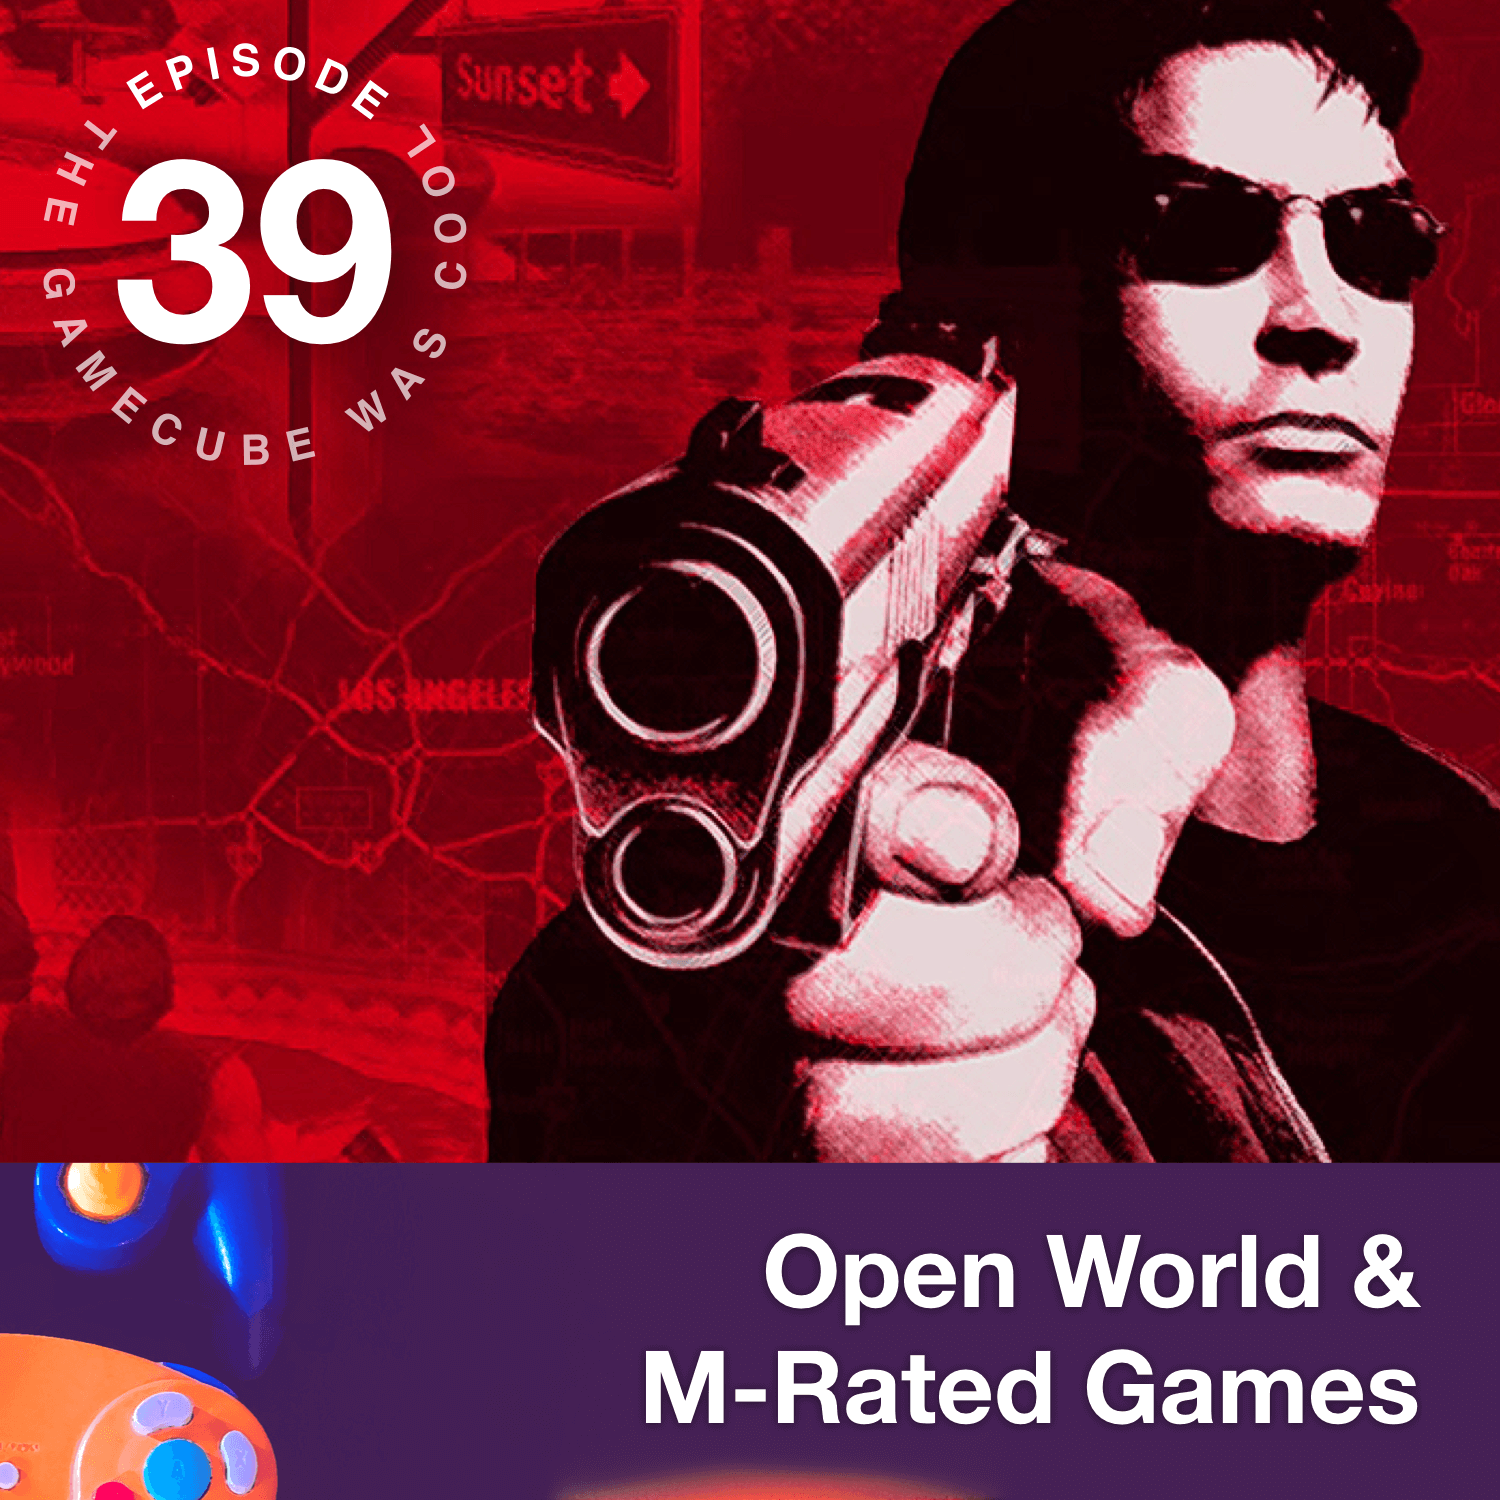 Open World & M-Rated Games